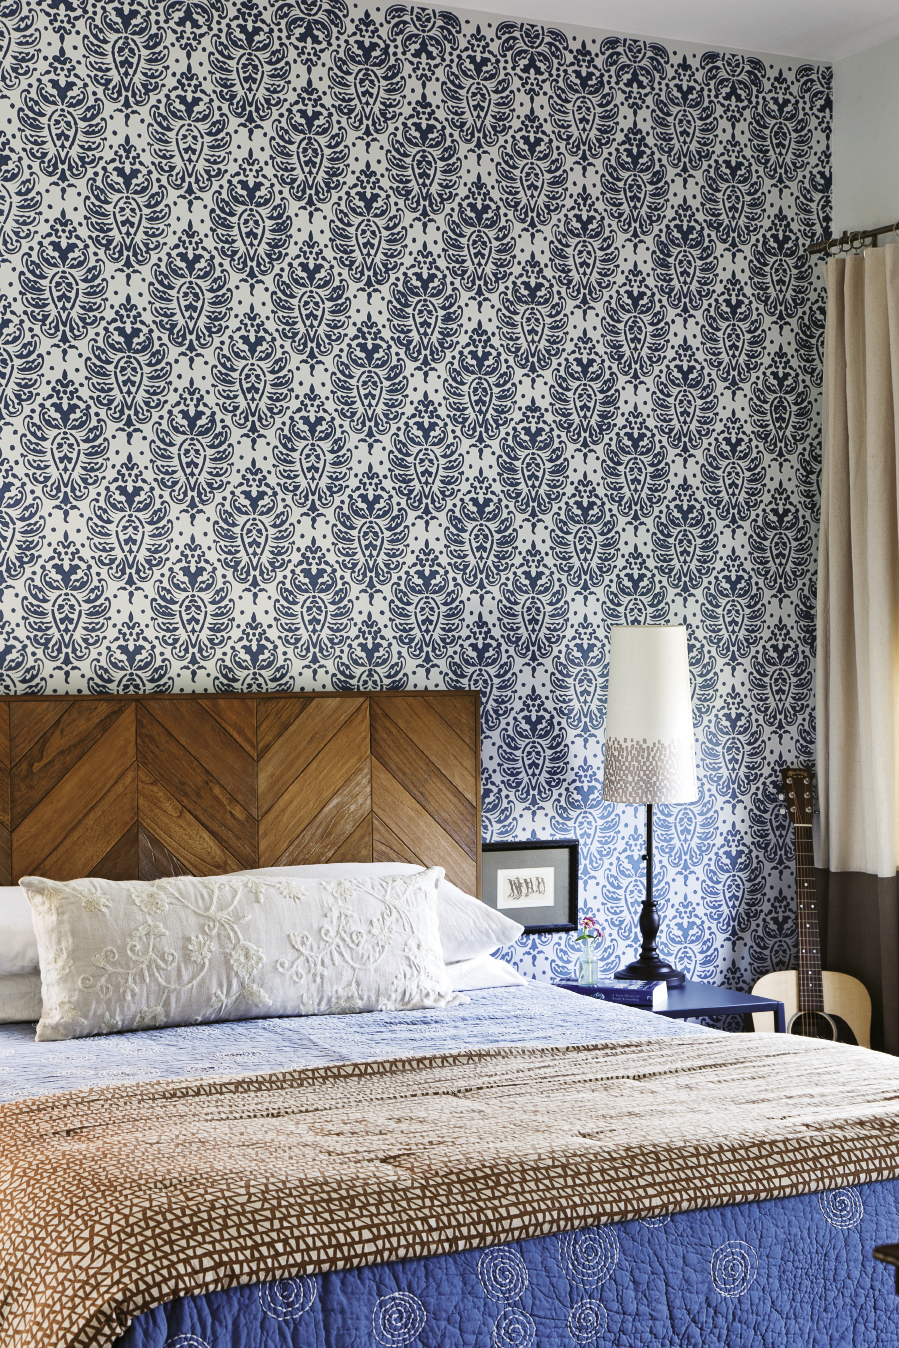 A repeating stencil pattern livens up the master bedroom; the penguin etching next to the bed was a gift from Mathis' sister.